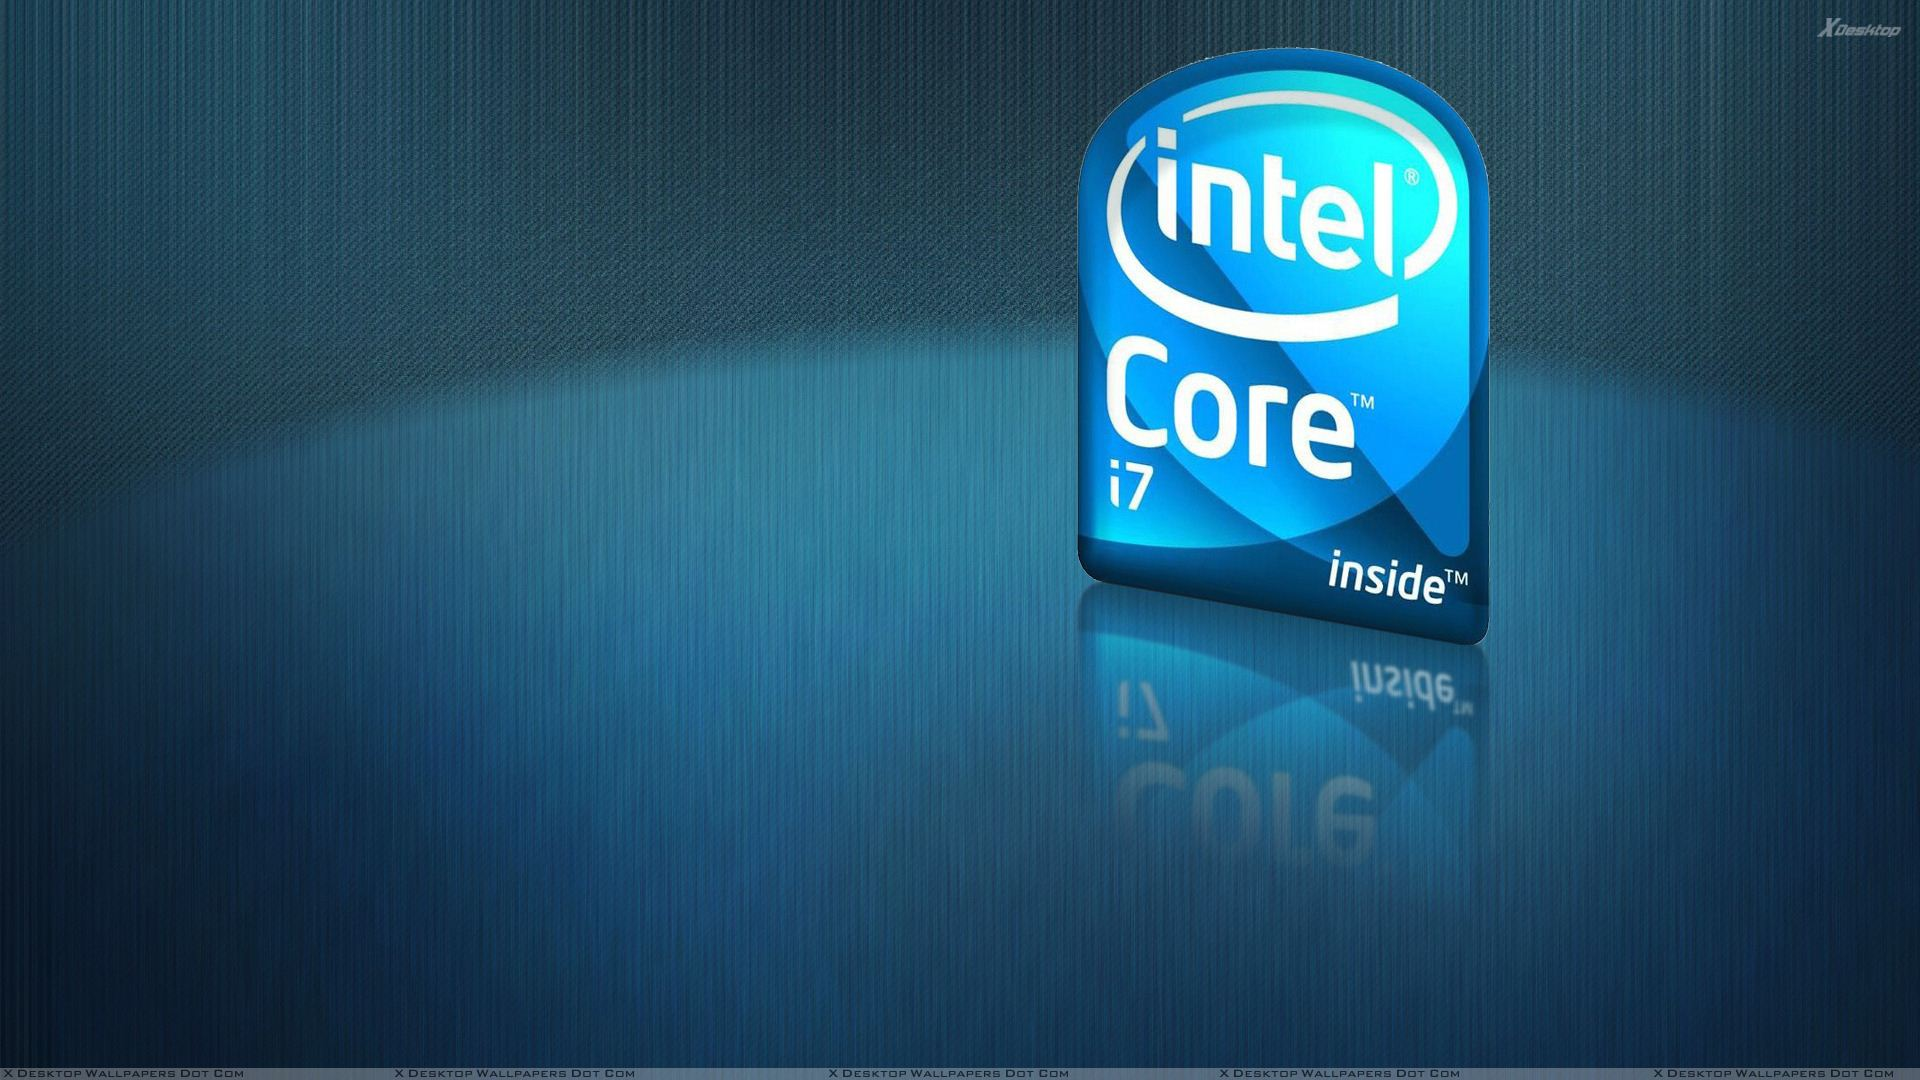 Intel Core i7 Logo And Blue Background Wallpaper 1920x1080